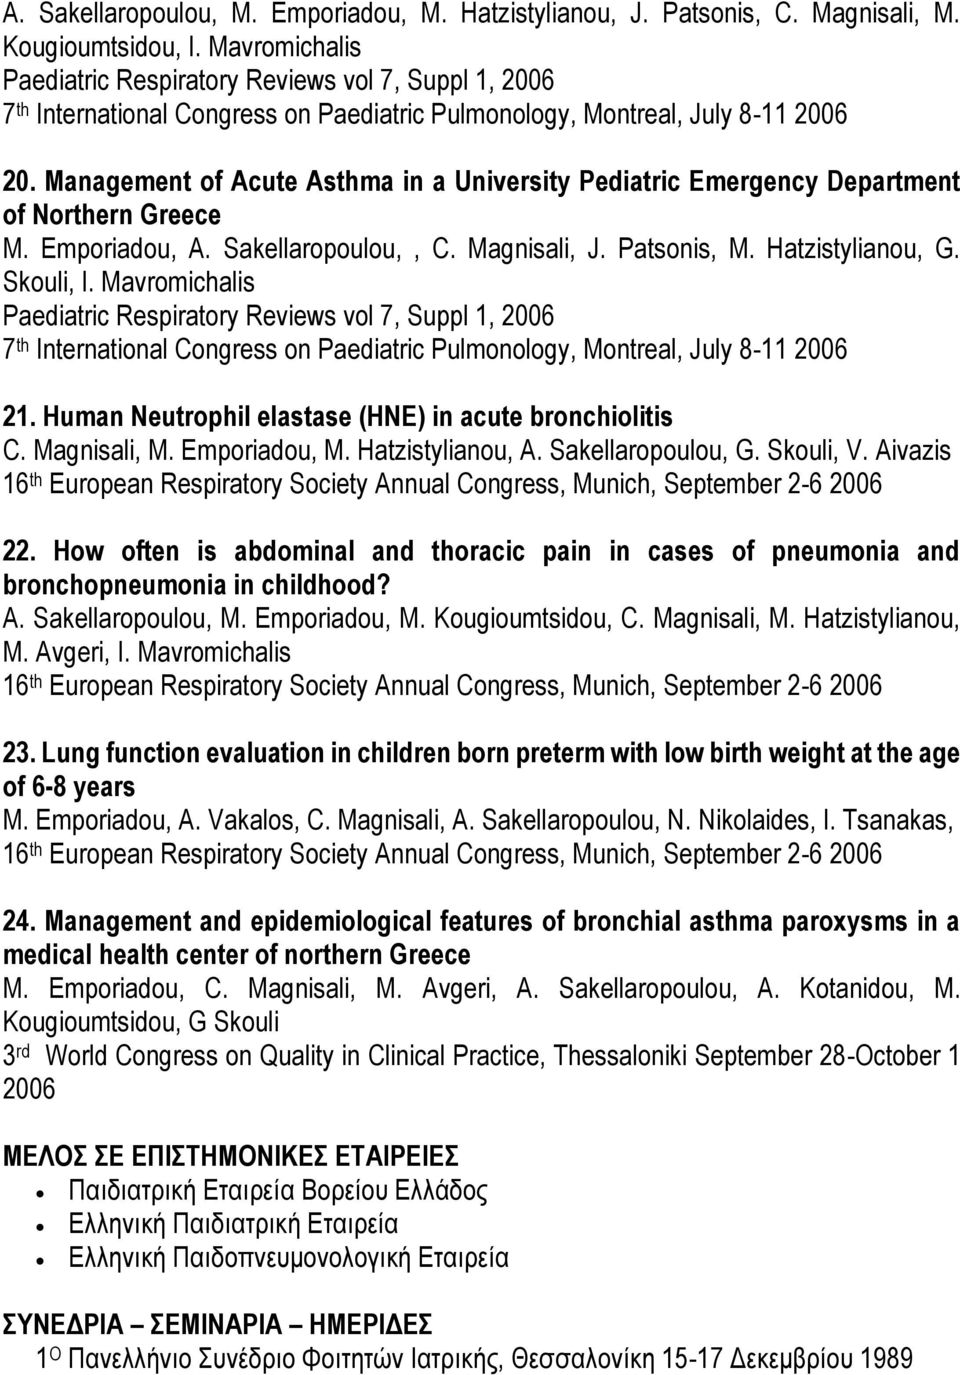 Management of Acute Asthma in a University Pediatric Emergency Department of Northern Greece M. Emporiadou, A. Sakellaropoulou,, C. Magnisali, J. Patsonis, M. Hatzistylianou, G. Skouli, I.